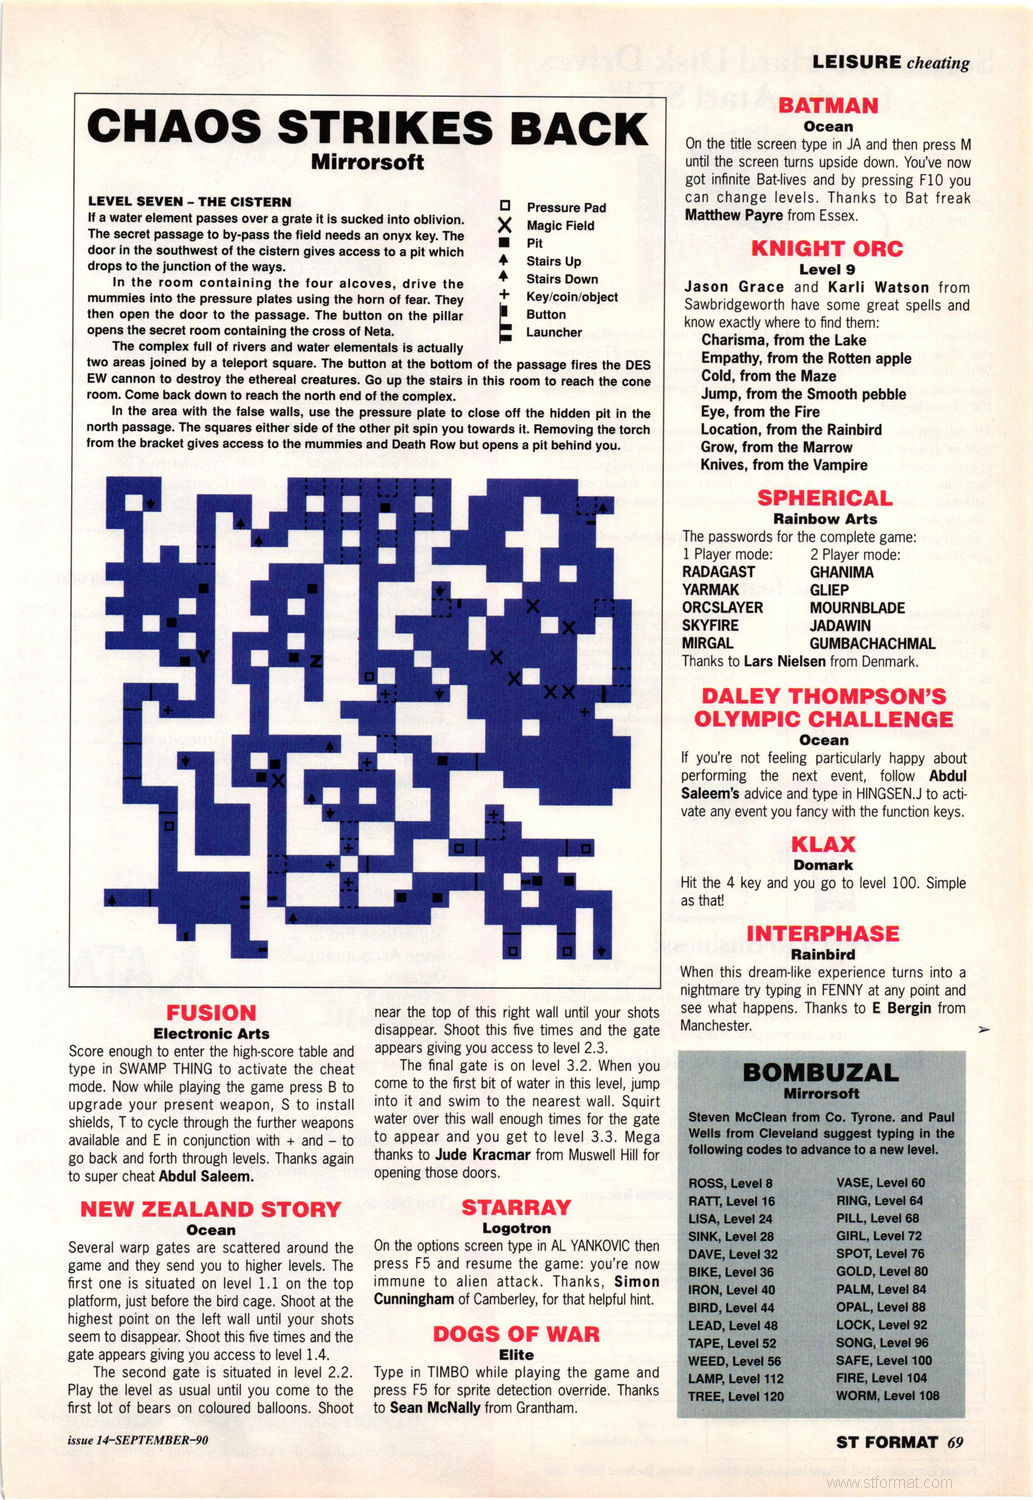 Chaos Strikes Back Hints published in British magazine 'ST Format', Issue #14 September 1990, Page 69